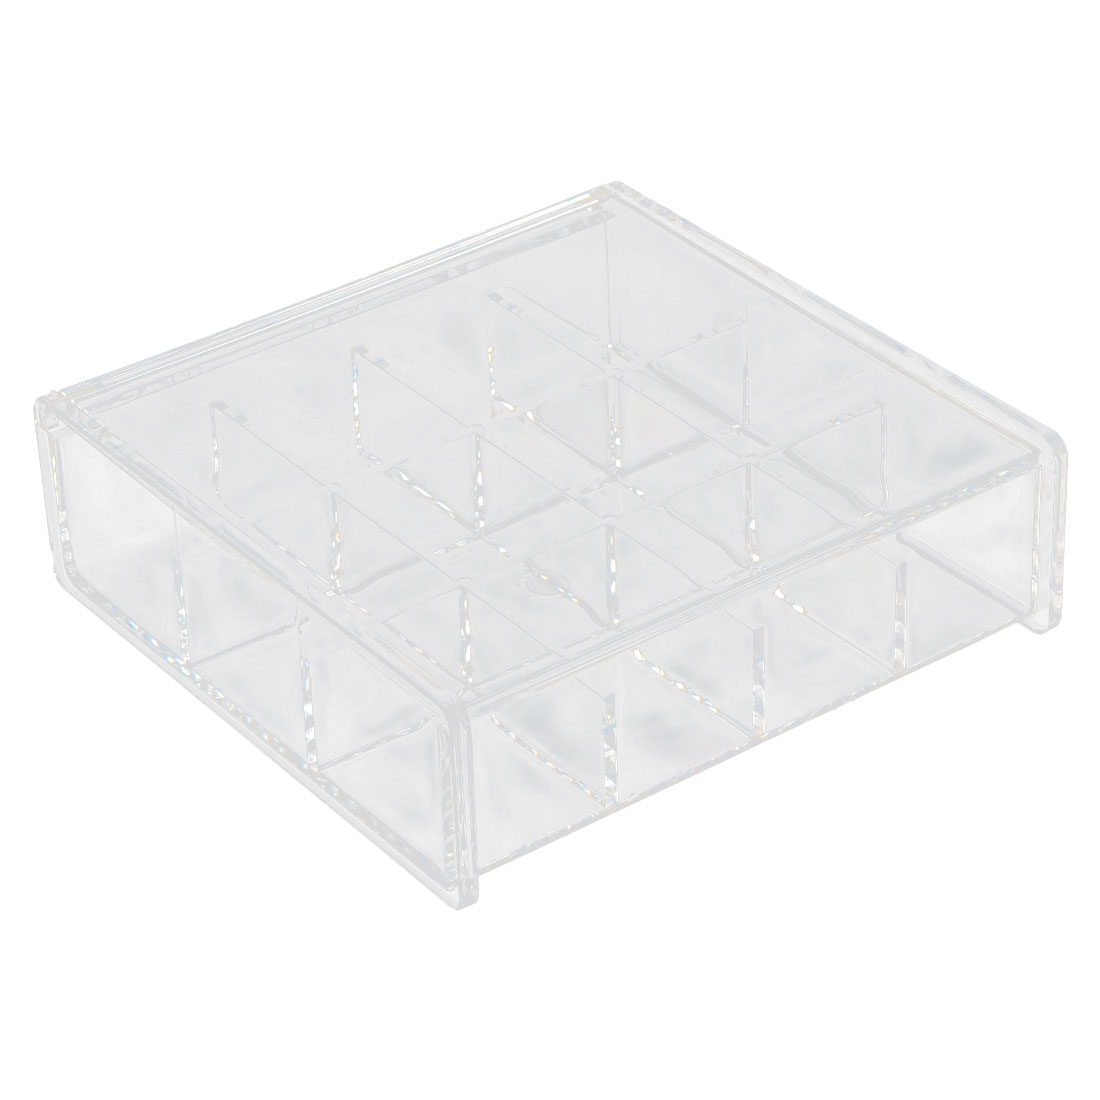 Household Acrylic Square Shaped Jewelry Makeup Necklace Box Organizer Clear